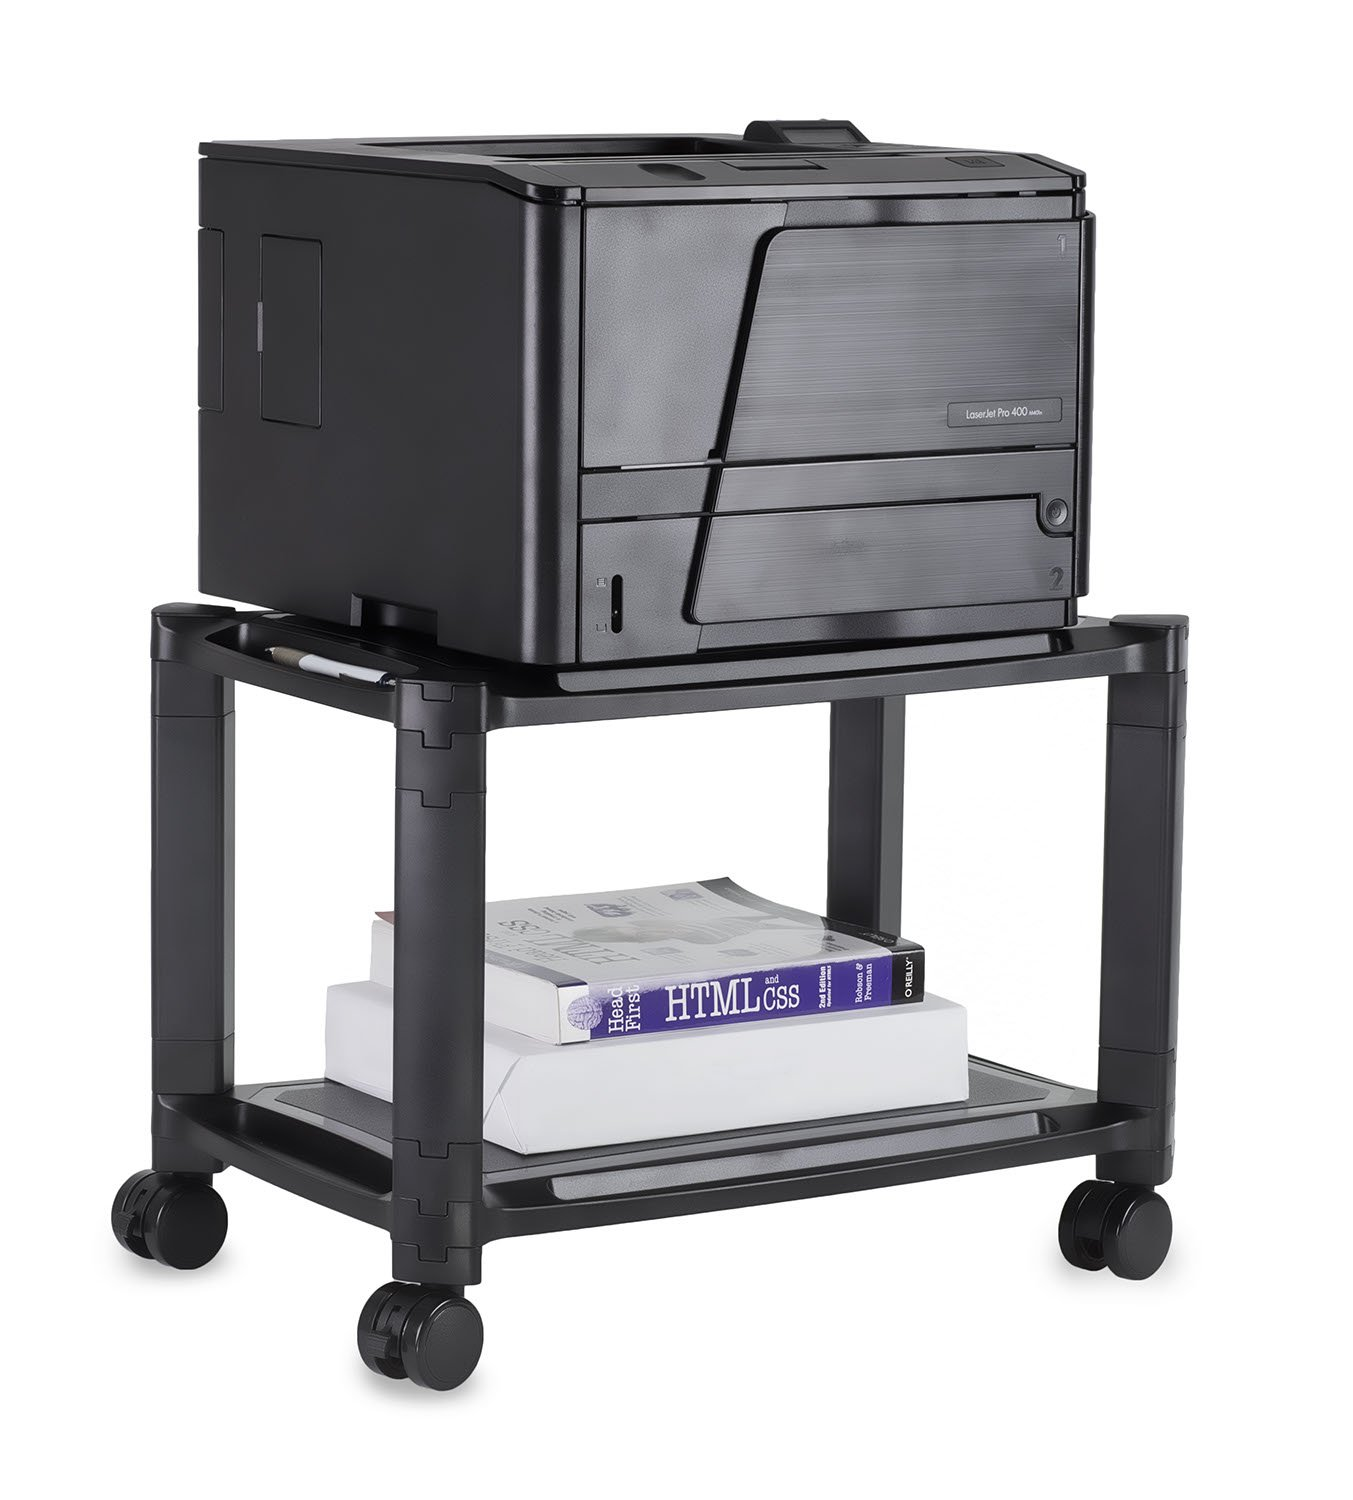 Mount-It! Under Desk Printer Stand with Wheels | Rolling Printer Cart | Height Adjustable Stacked Office Machine Cart with Paper Storage Tray, 44 Lbs Capacity, Black by Mount-It!